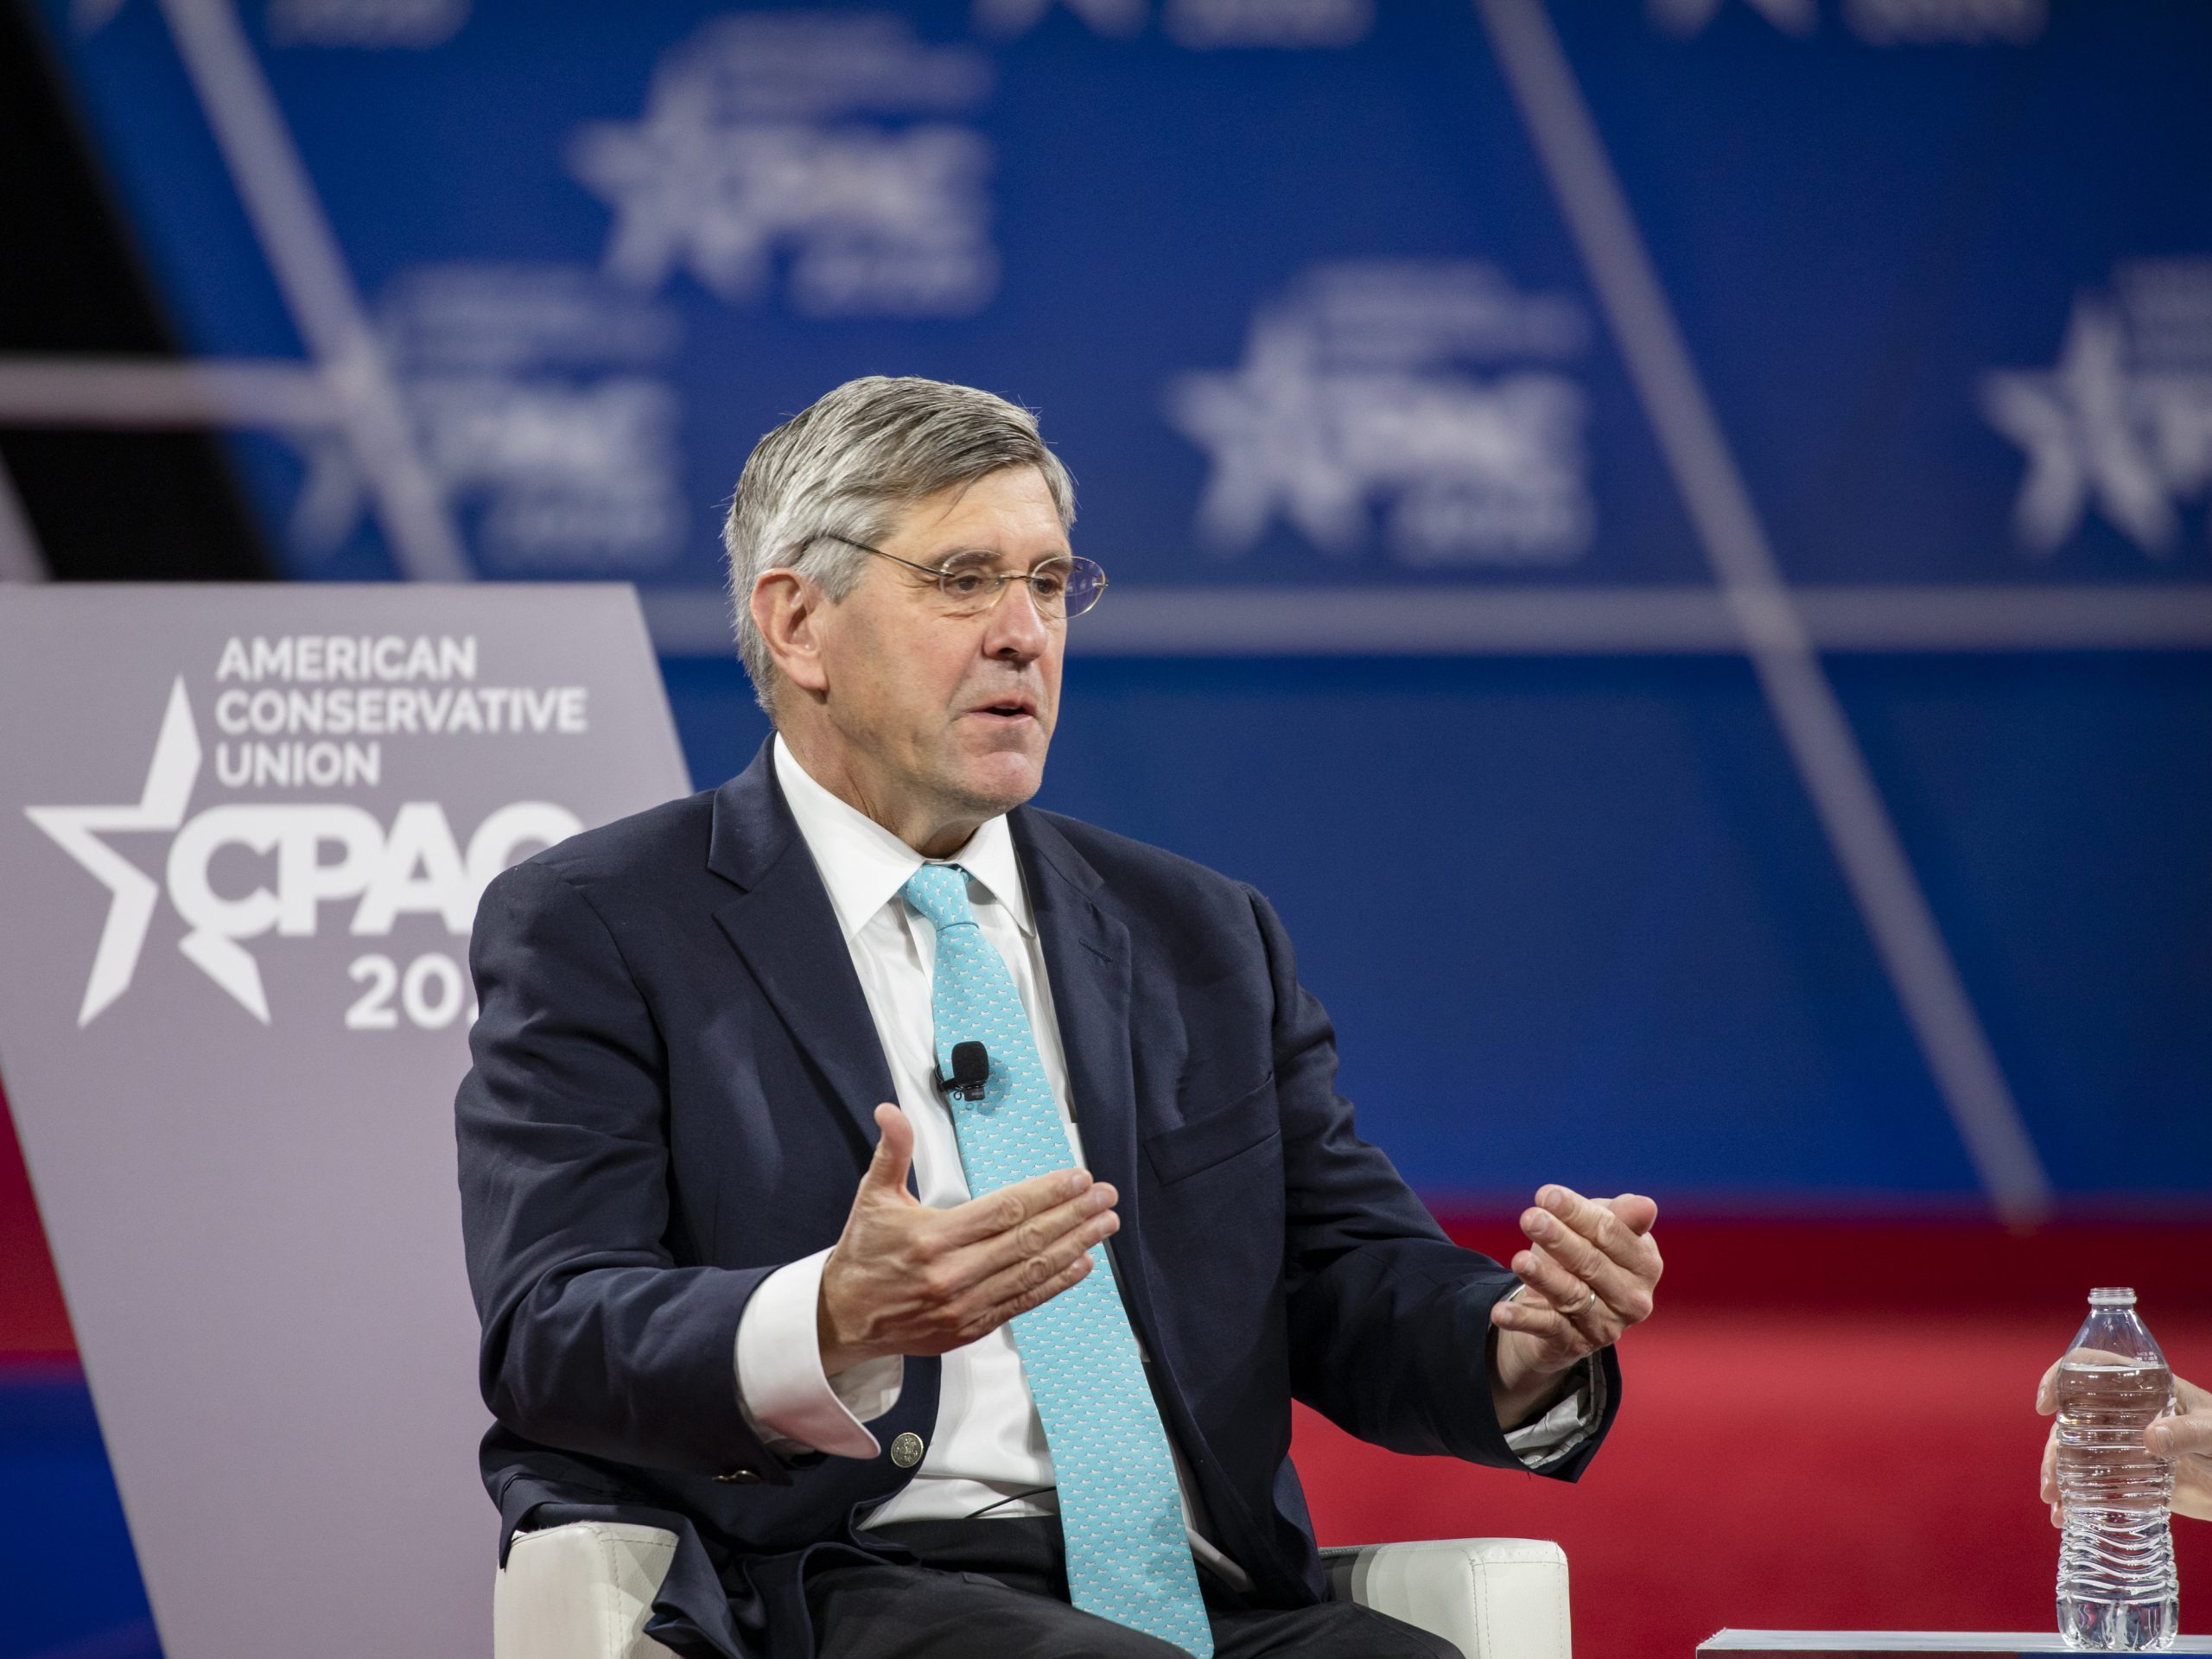 Stephen Moore speaks at the Conservative Political Action Conference on Feb. 28 before health officials shut down large gatherings because of the coronavirus.